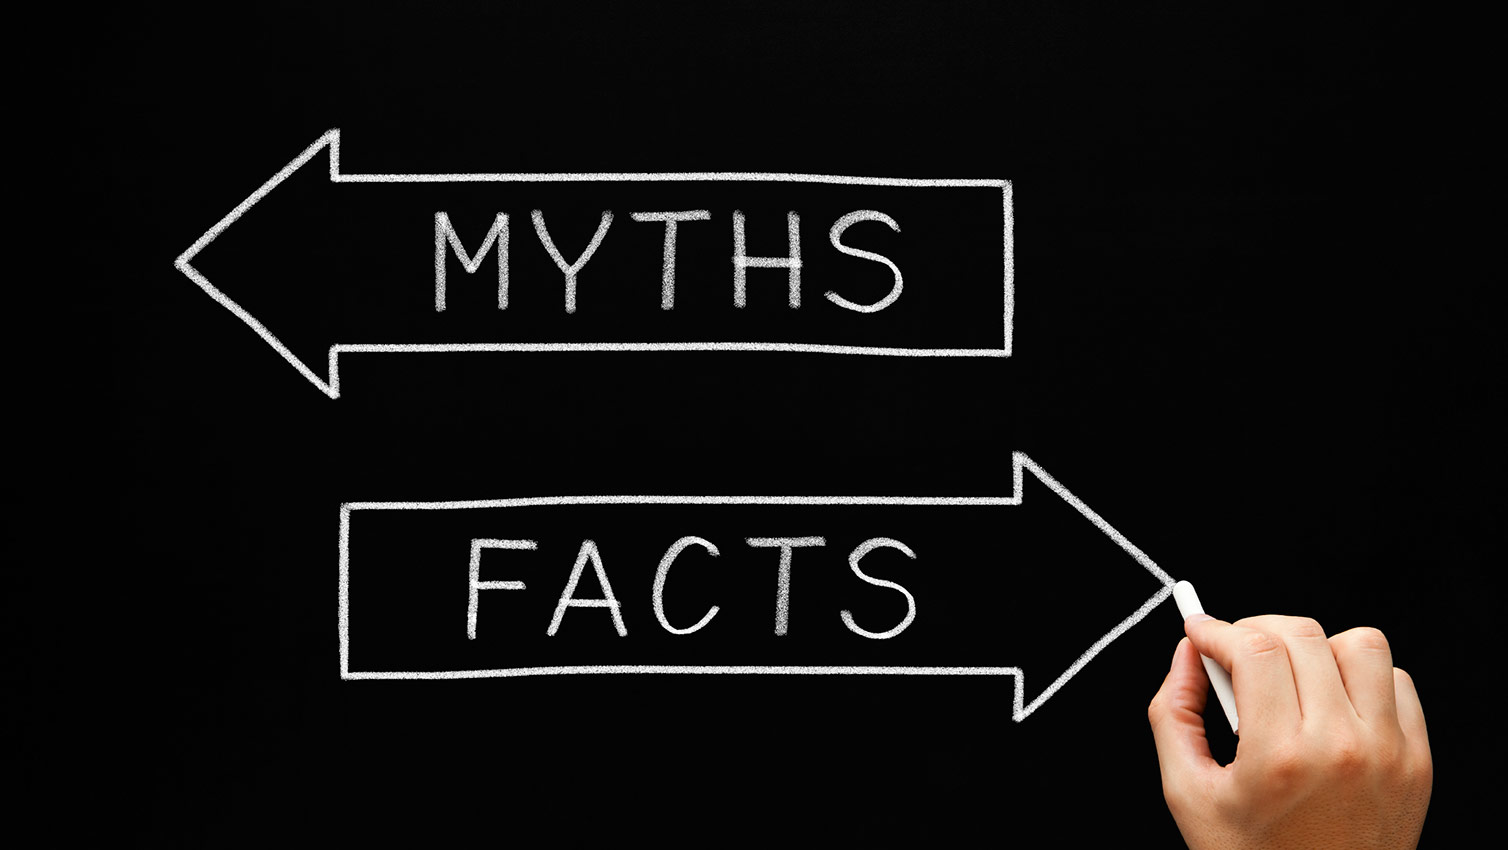 Why bother about myths?